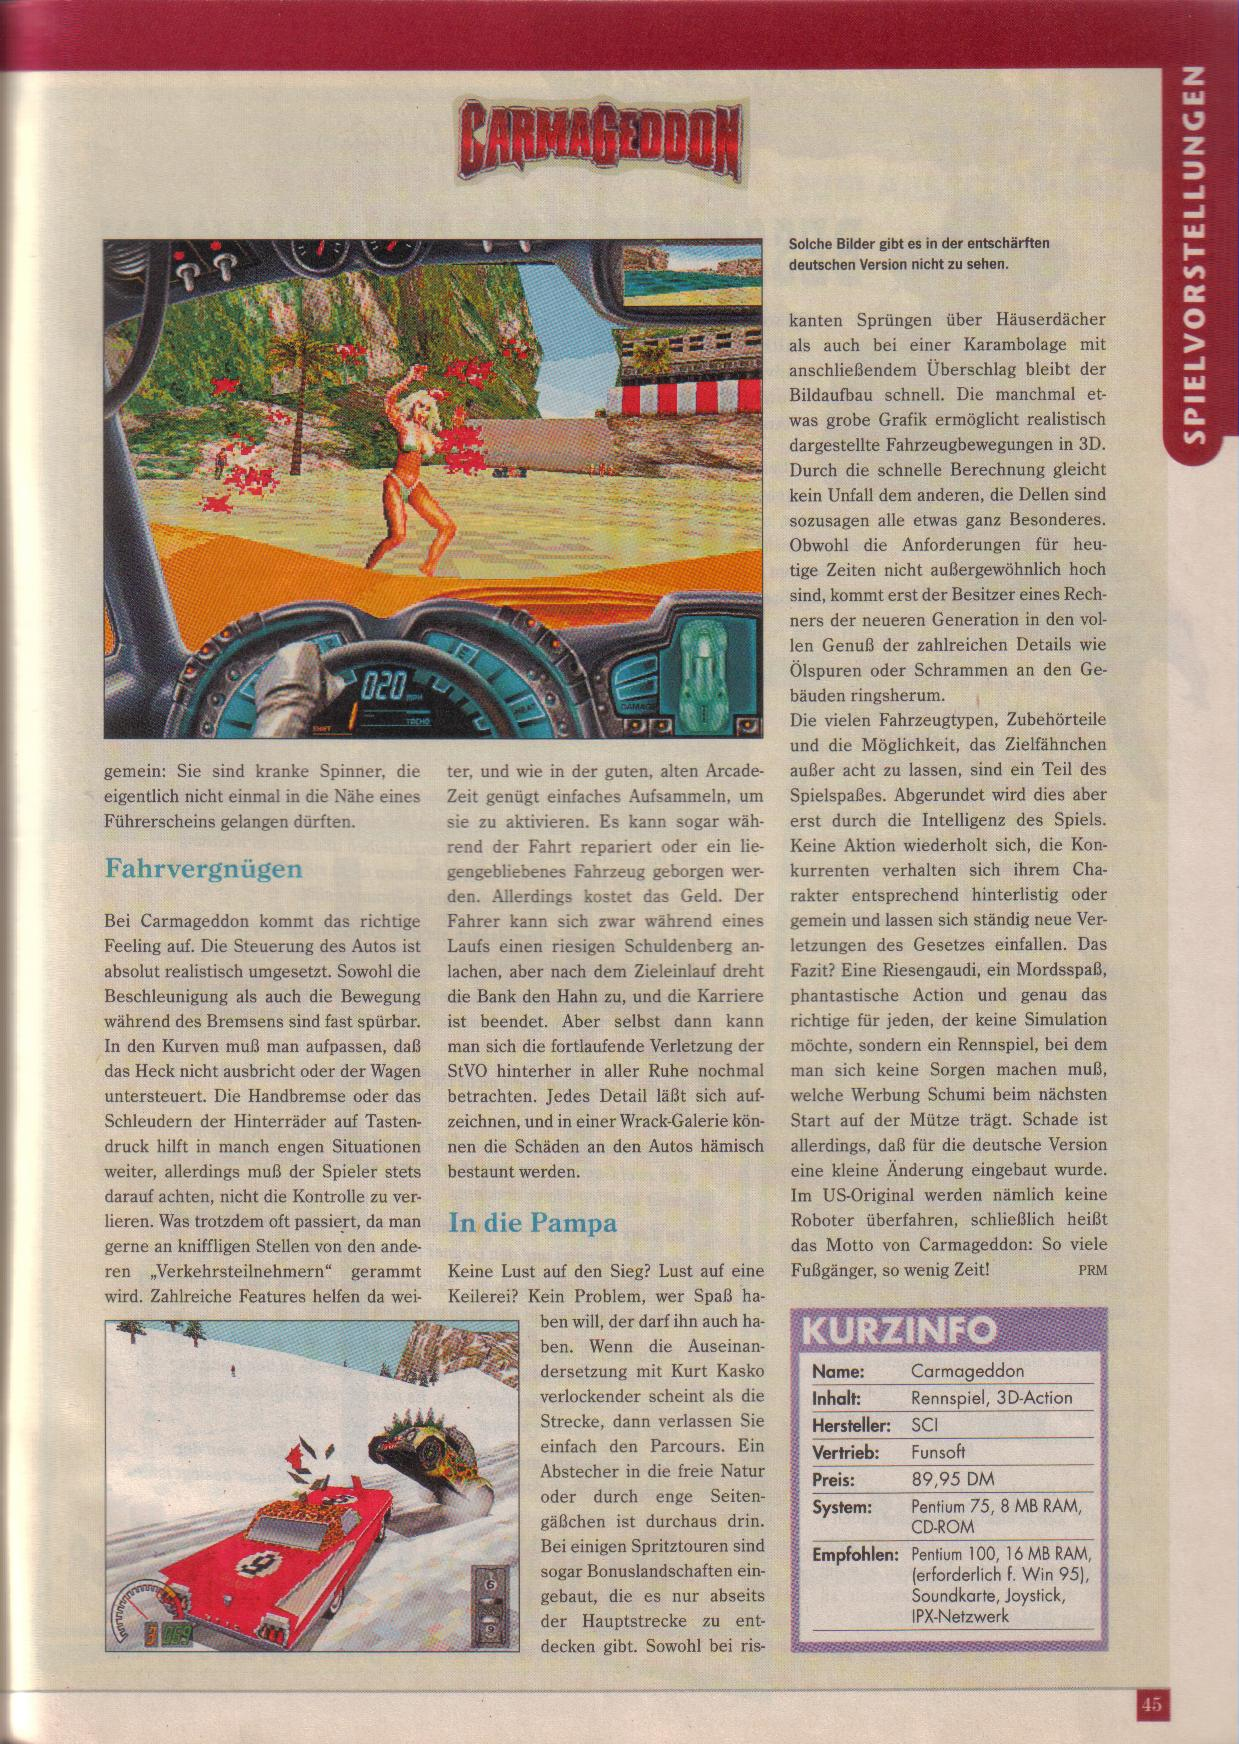 Dungeon Master II for PC (German, Best Seller Games) Page 45